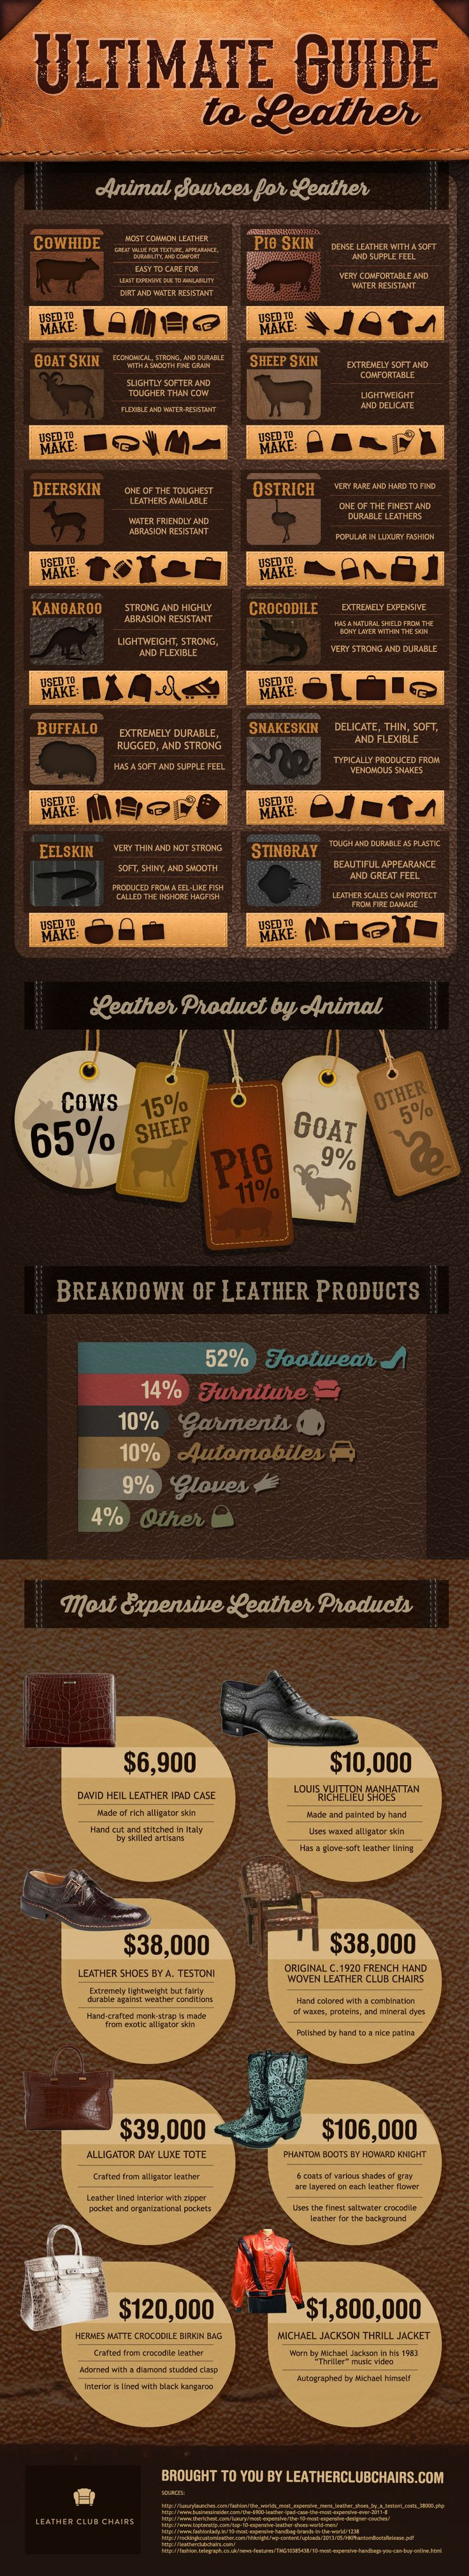 Ultimate Guide to Leather   #infographic #Leather #LifeStyle